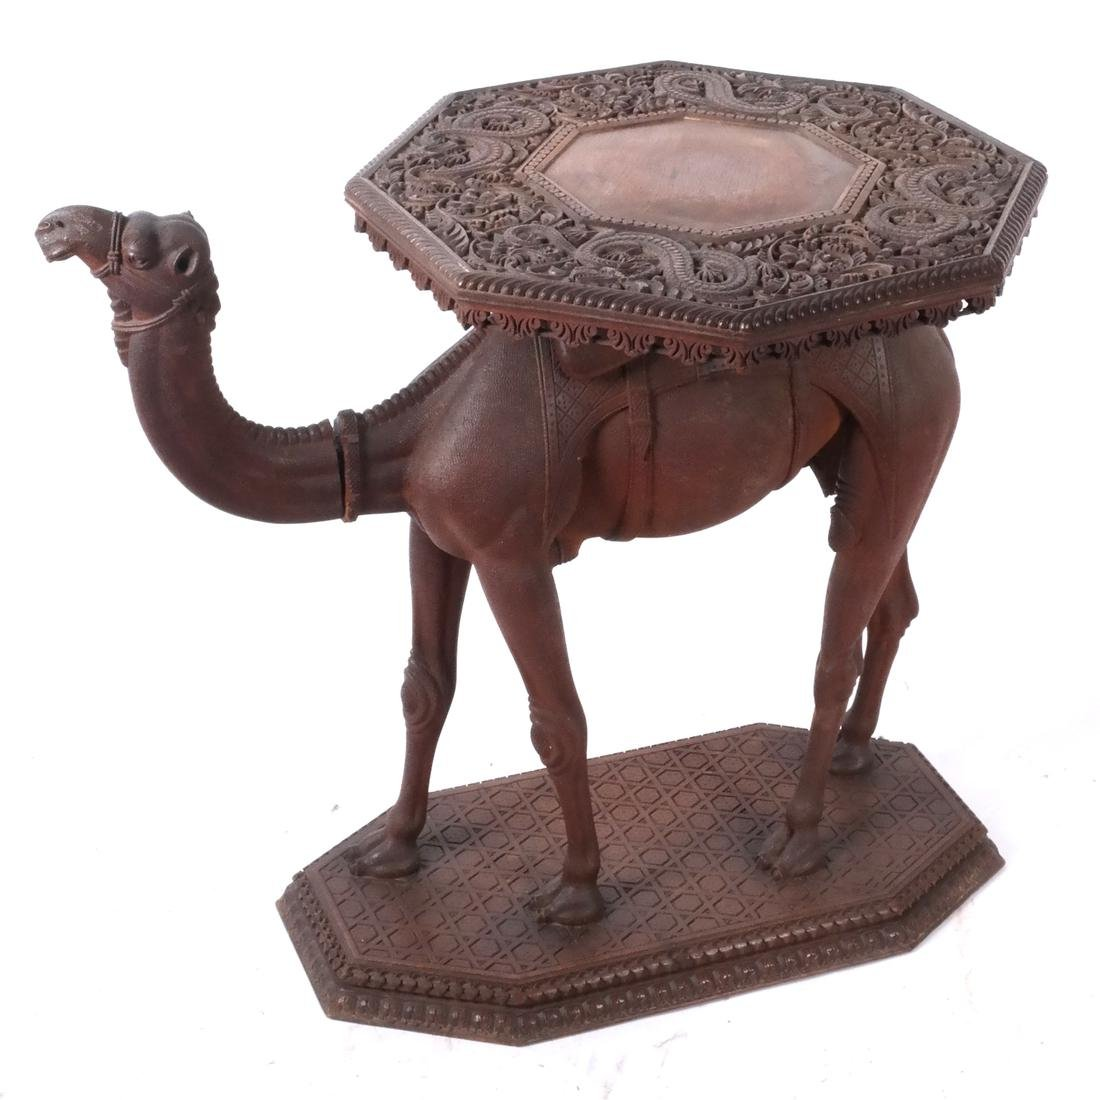 Syrian-Moroccan Camel-Form Table